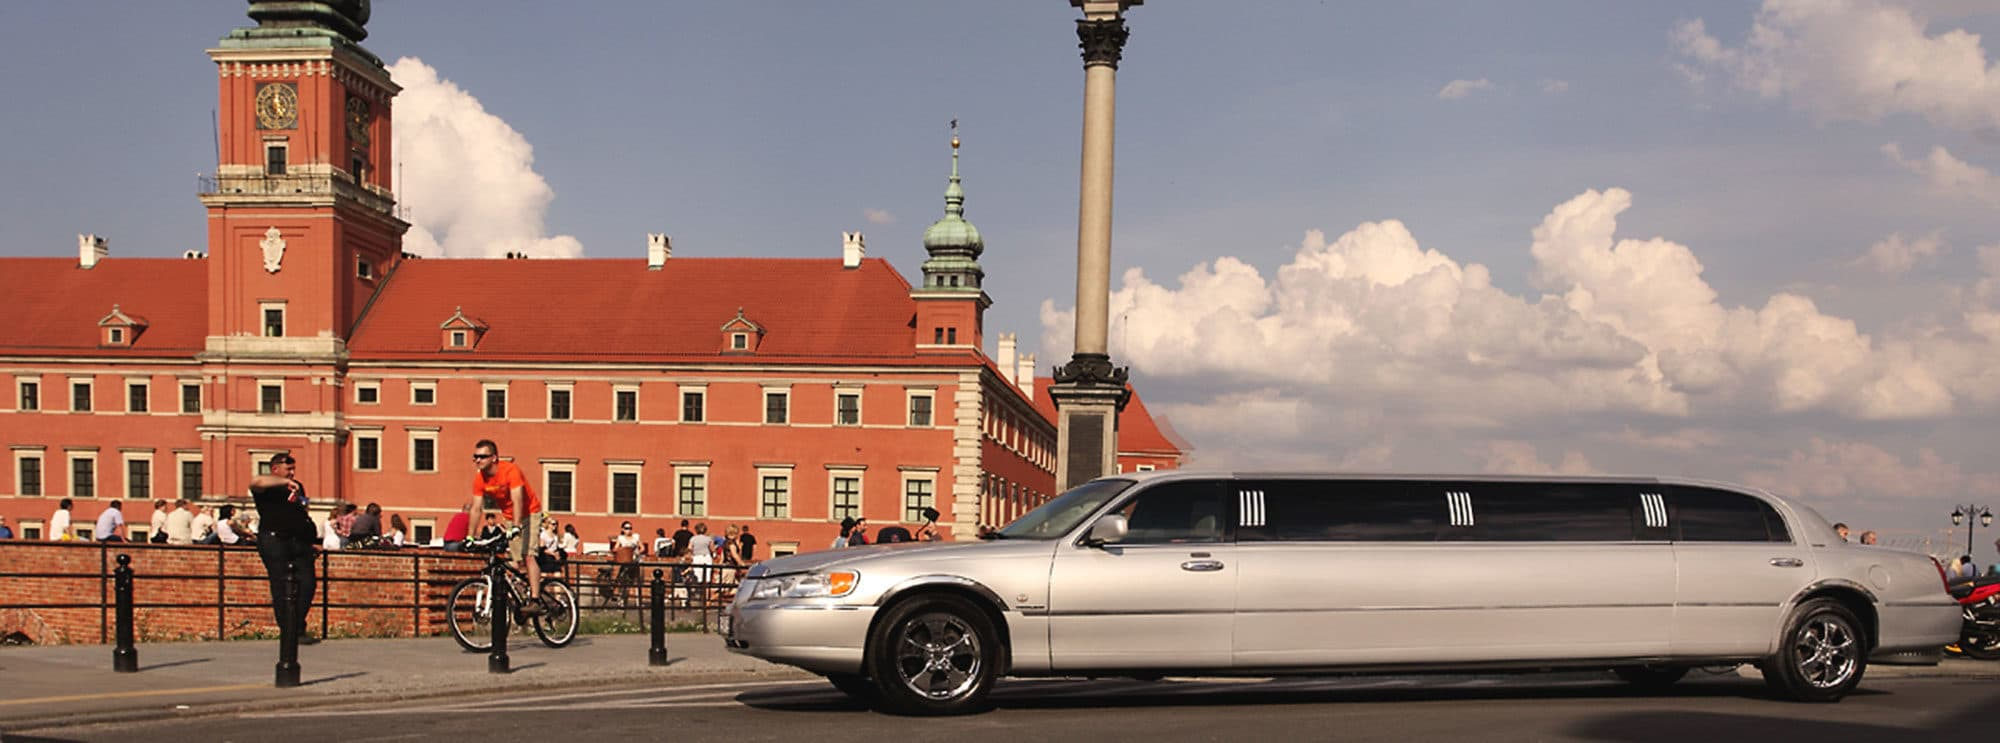 Modlin Airport transfer with our lincoln limousine straight to your accommodation in Warsaw